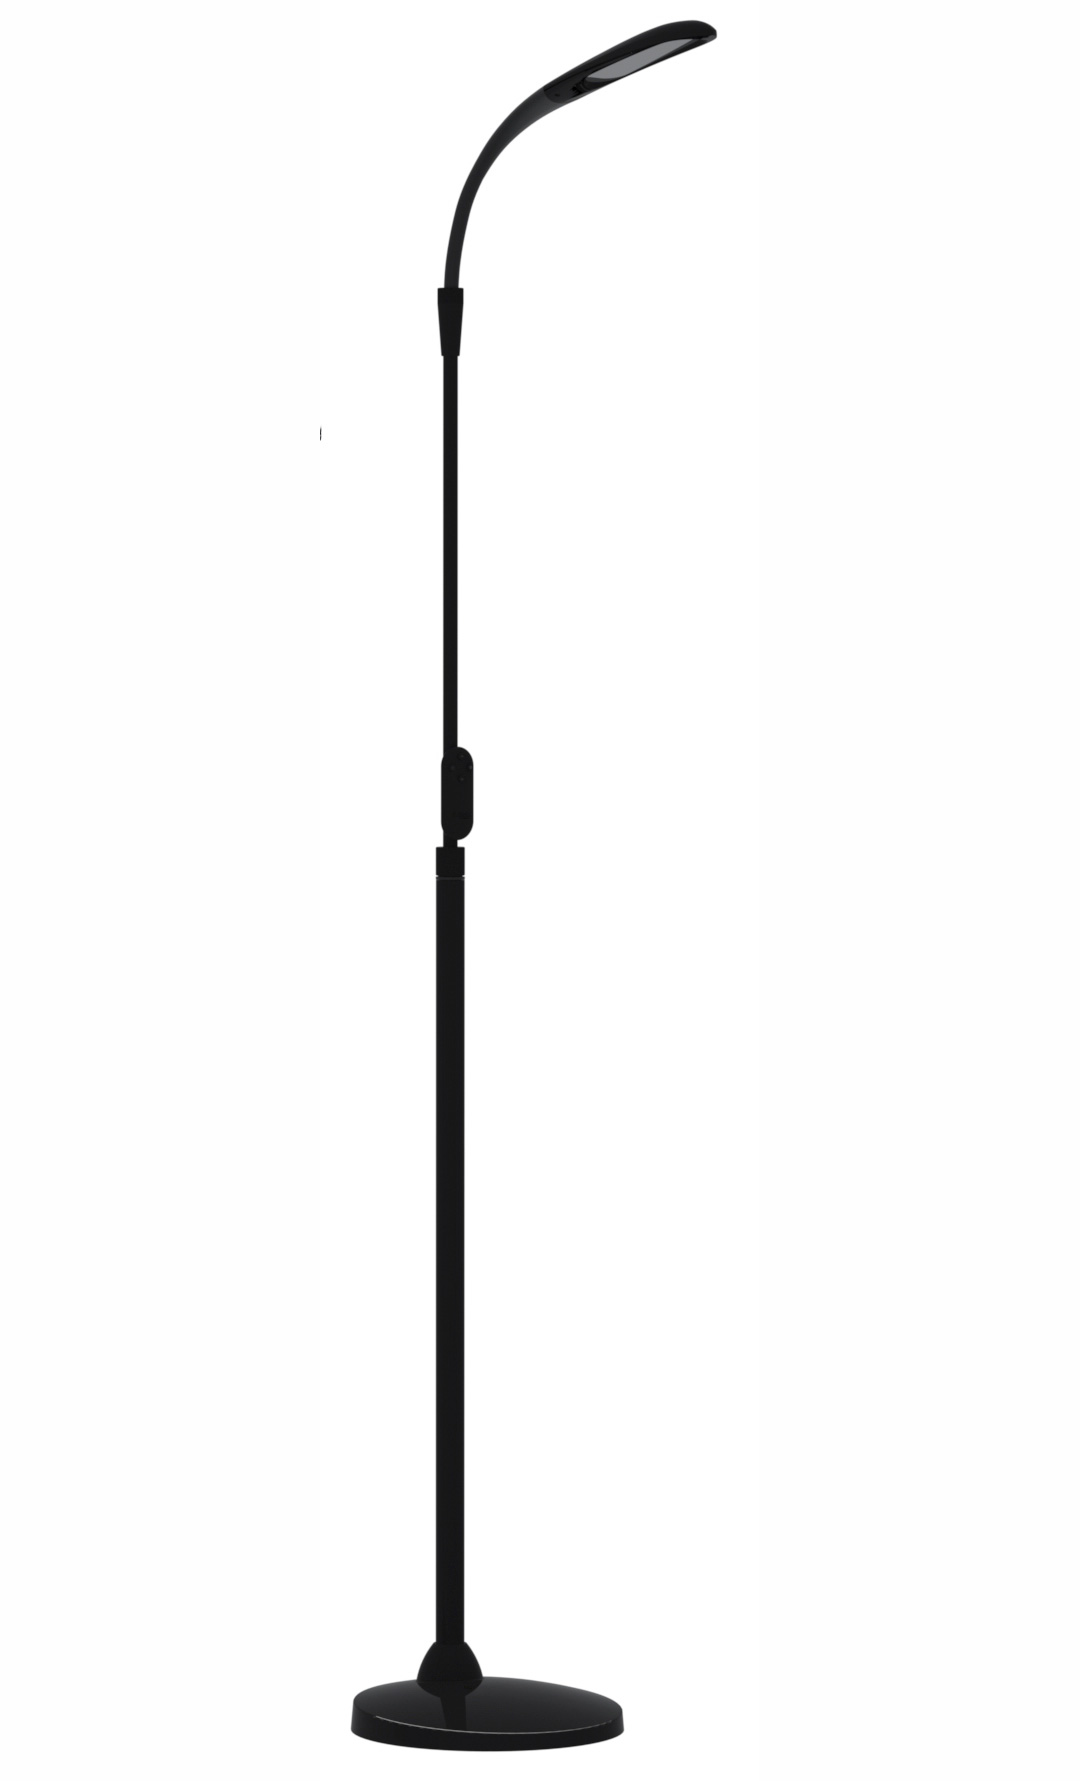 Lamps clipart floor lamp Free Lamp Clipart Clipart Clipart